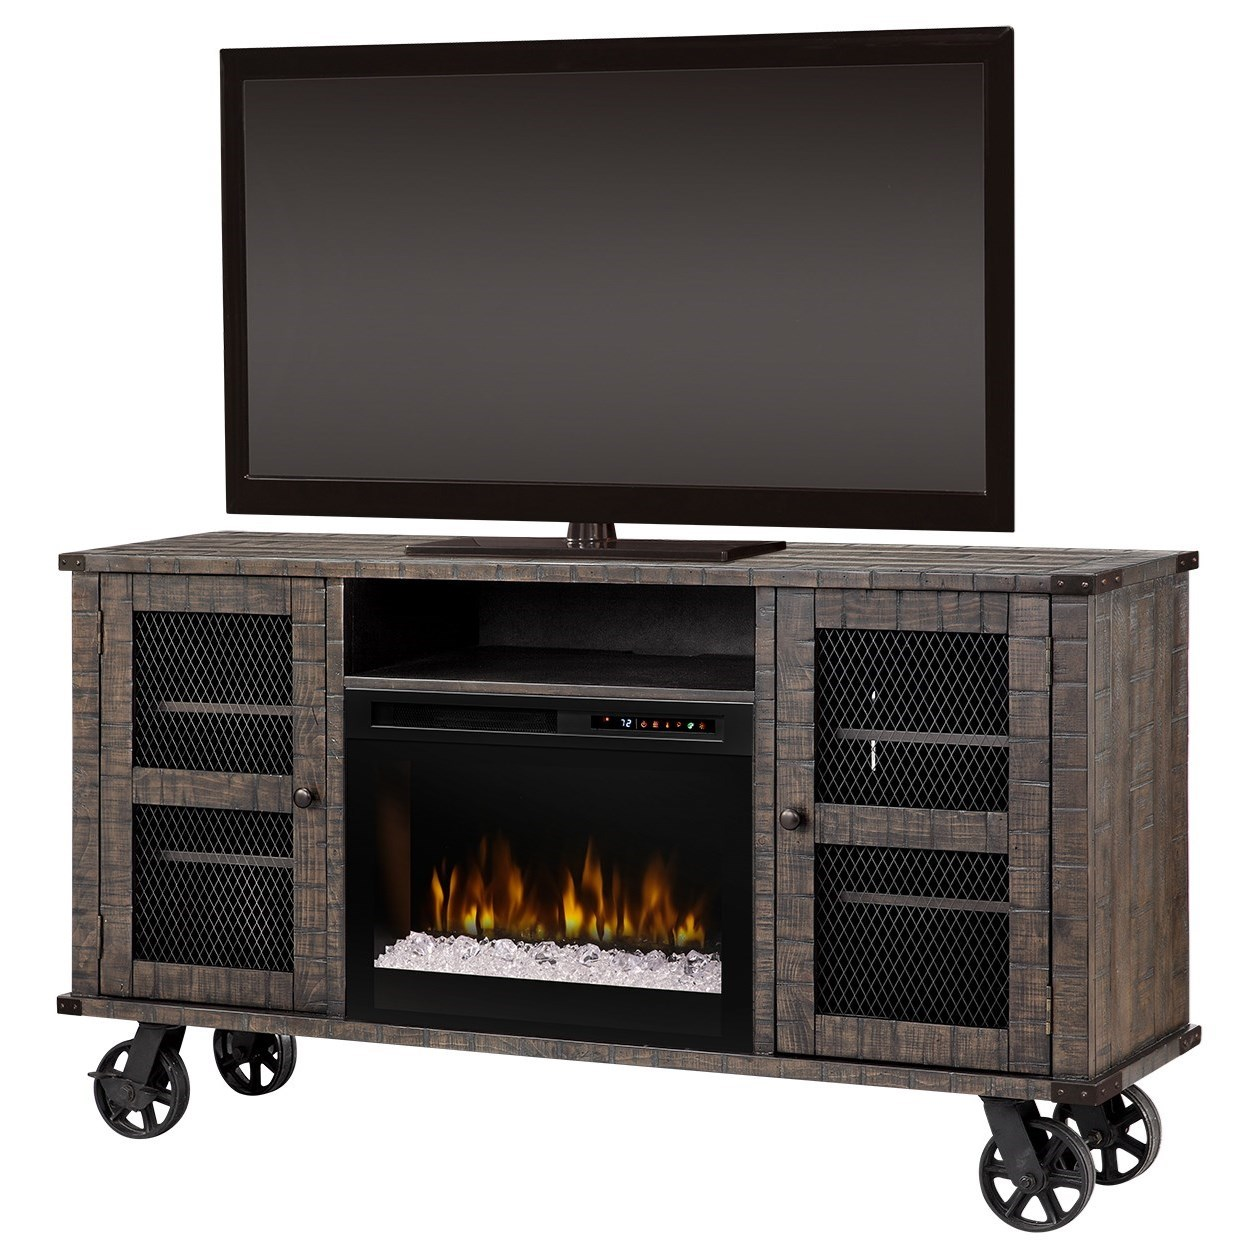 Duncan Dimplex Fireplace Media Console with Locking Wheels by Dimplex at Jordan's Home Furnishings